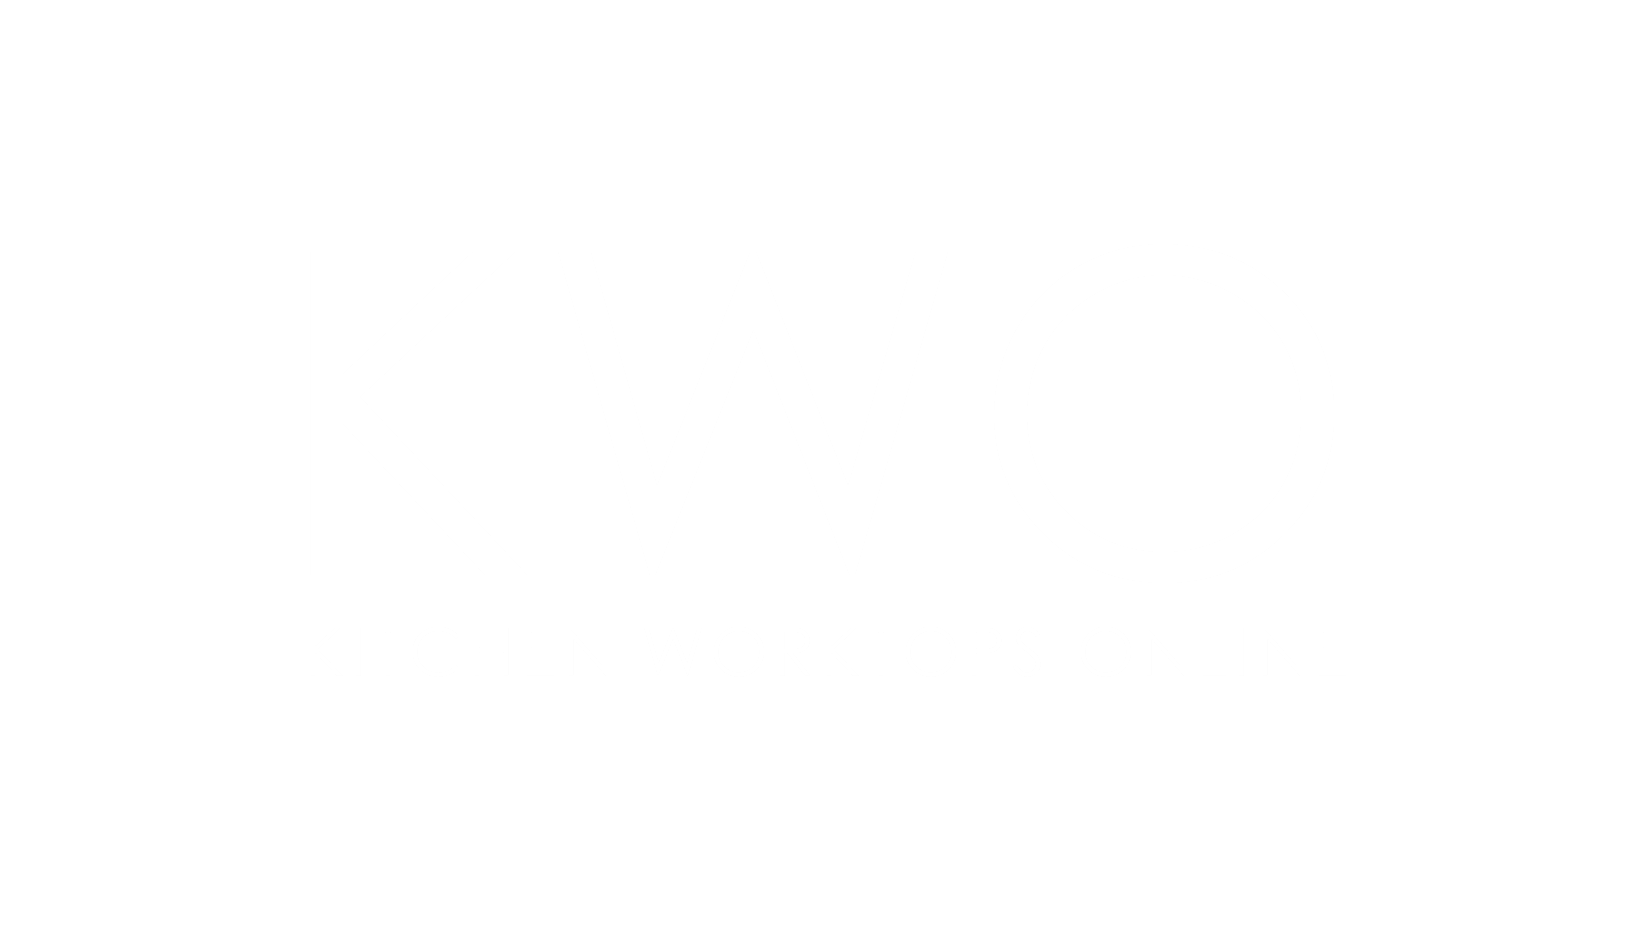 Kitchen Worktops Online